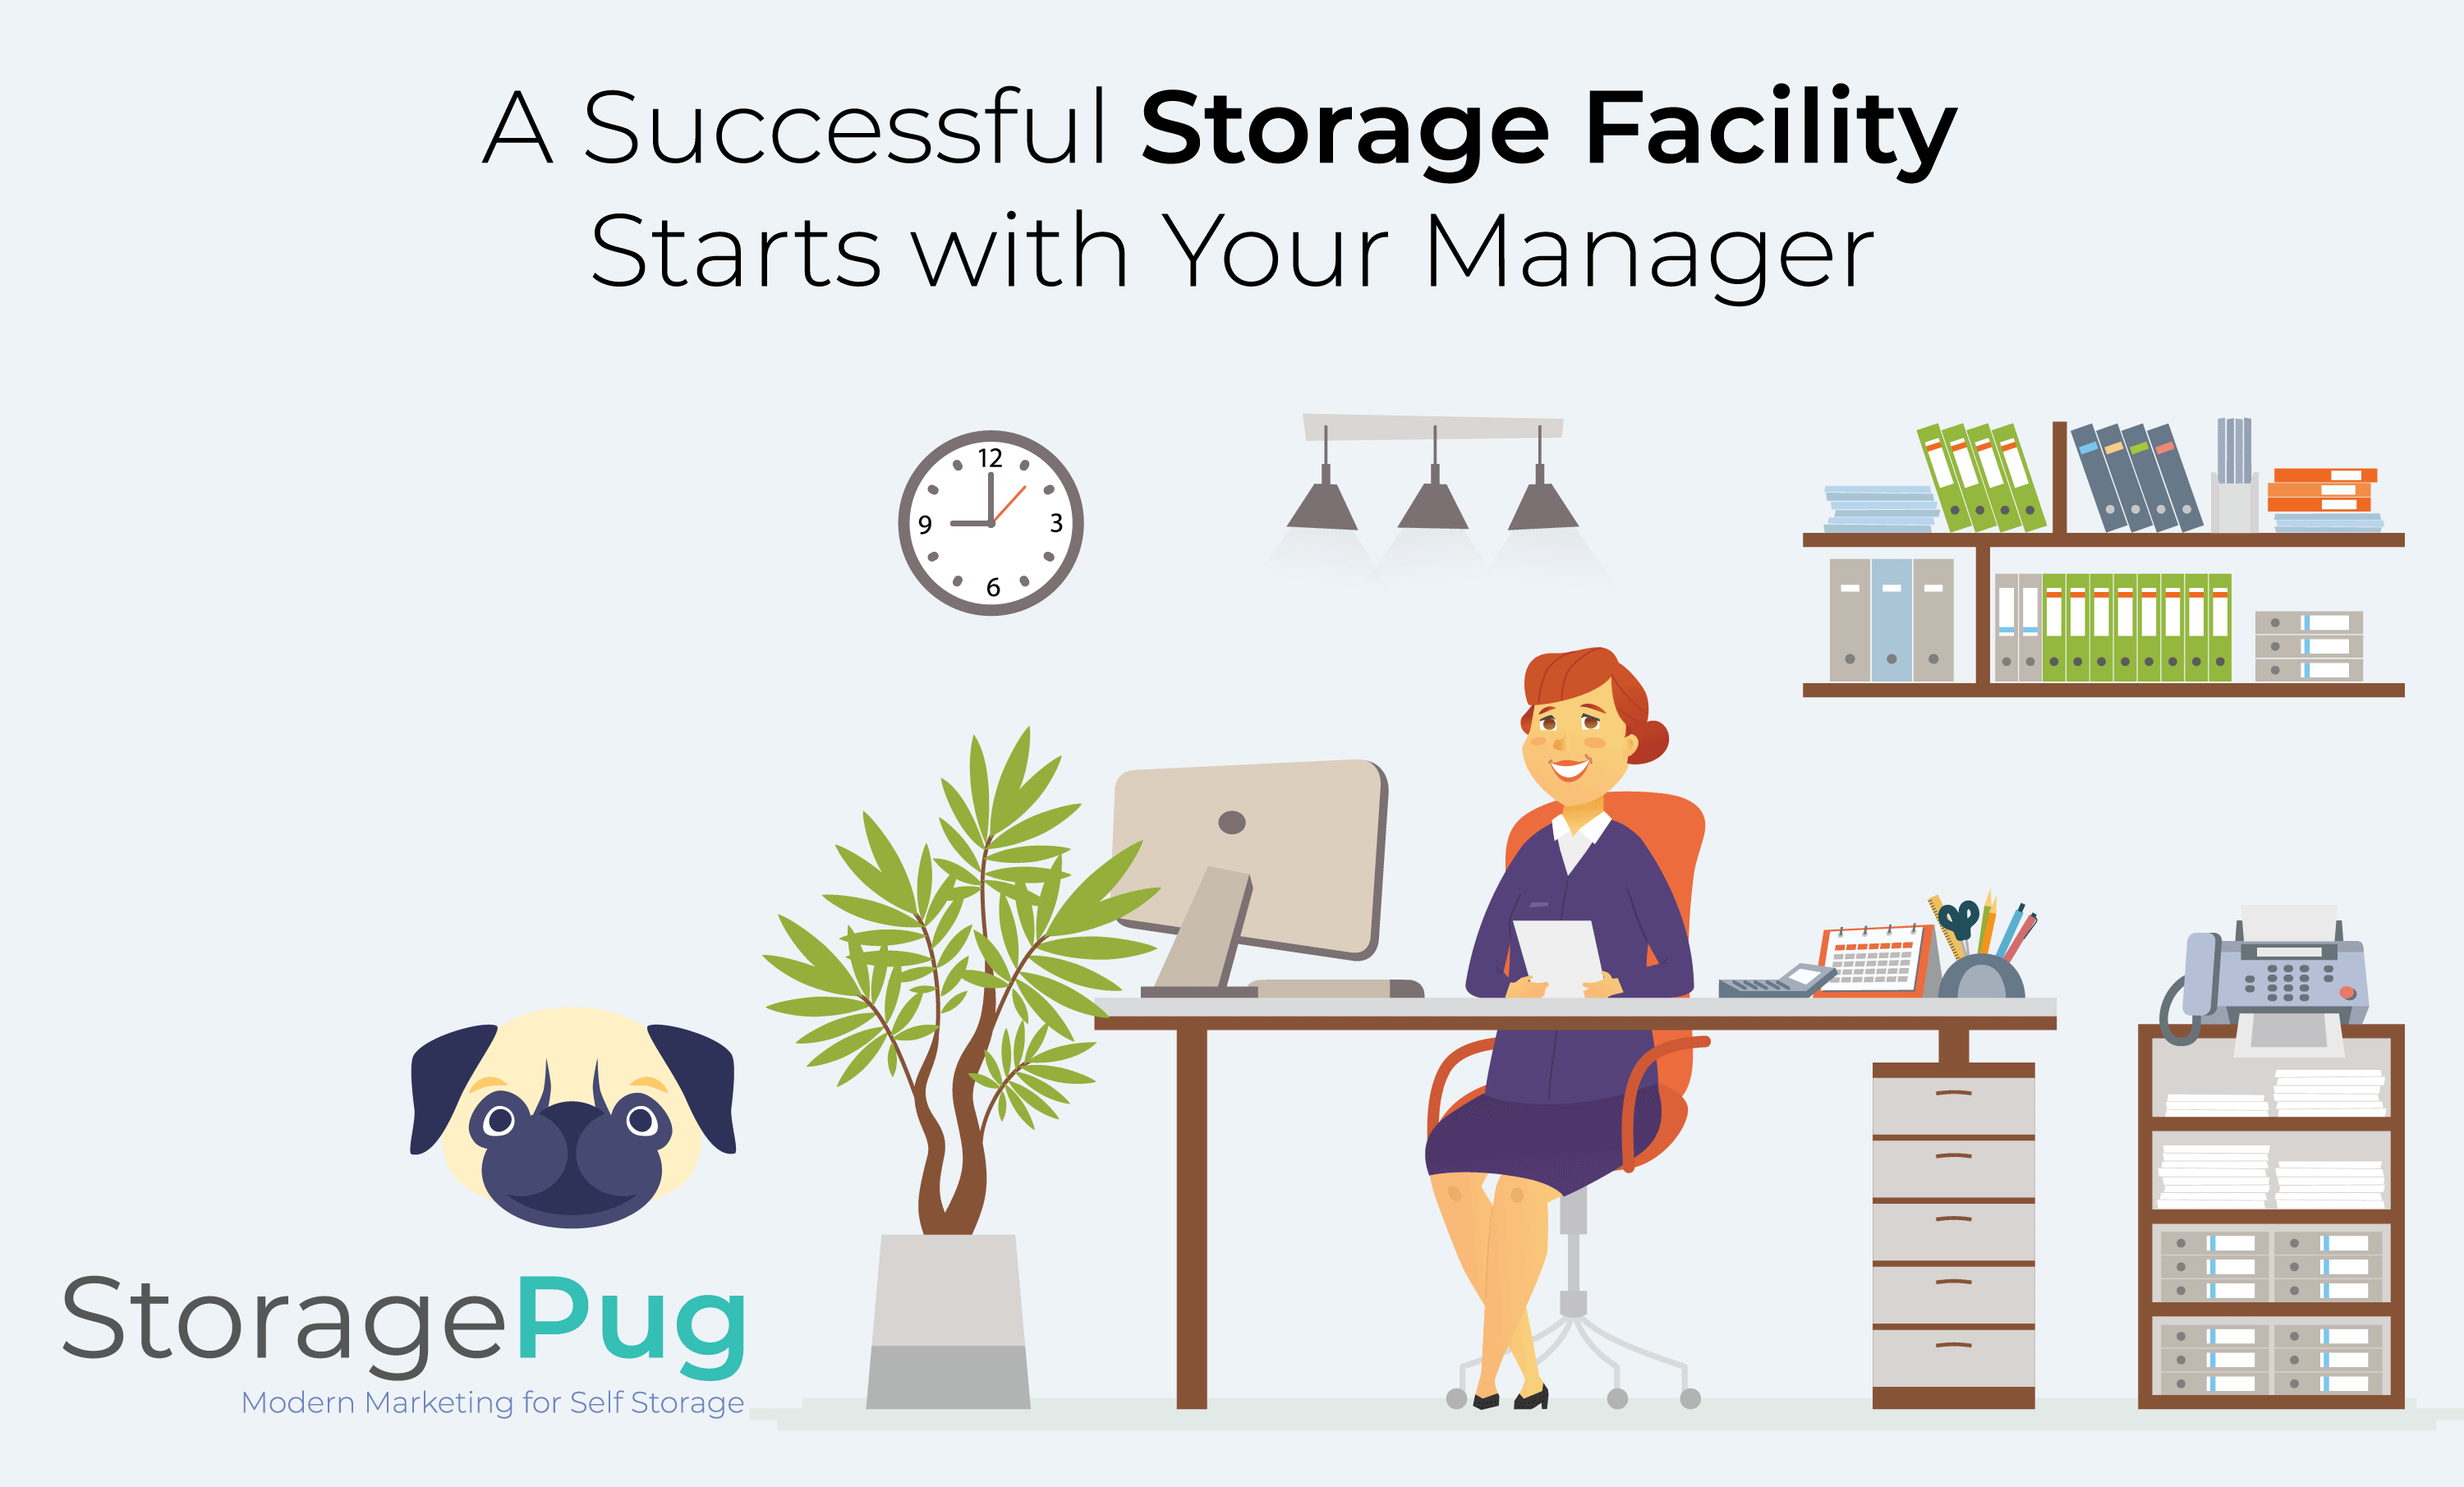 Self storage facilities with better managers tend to have higher occupancy levels.